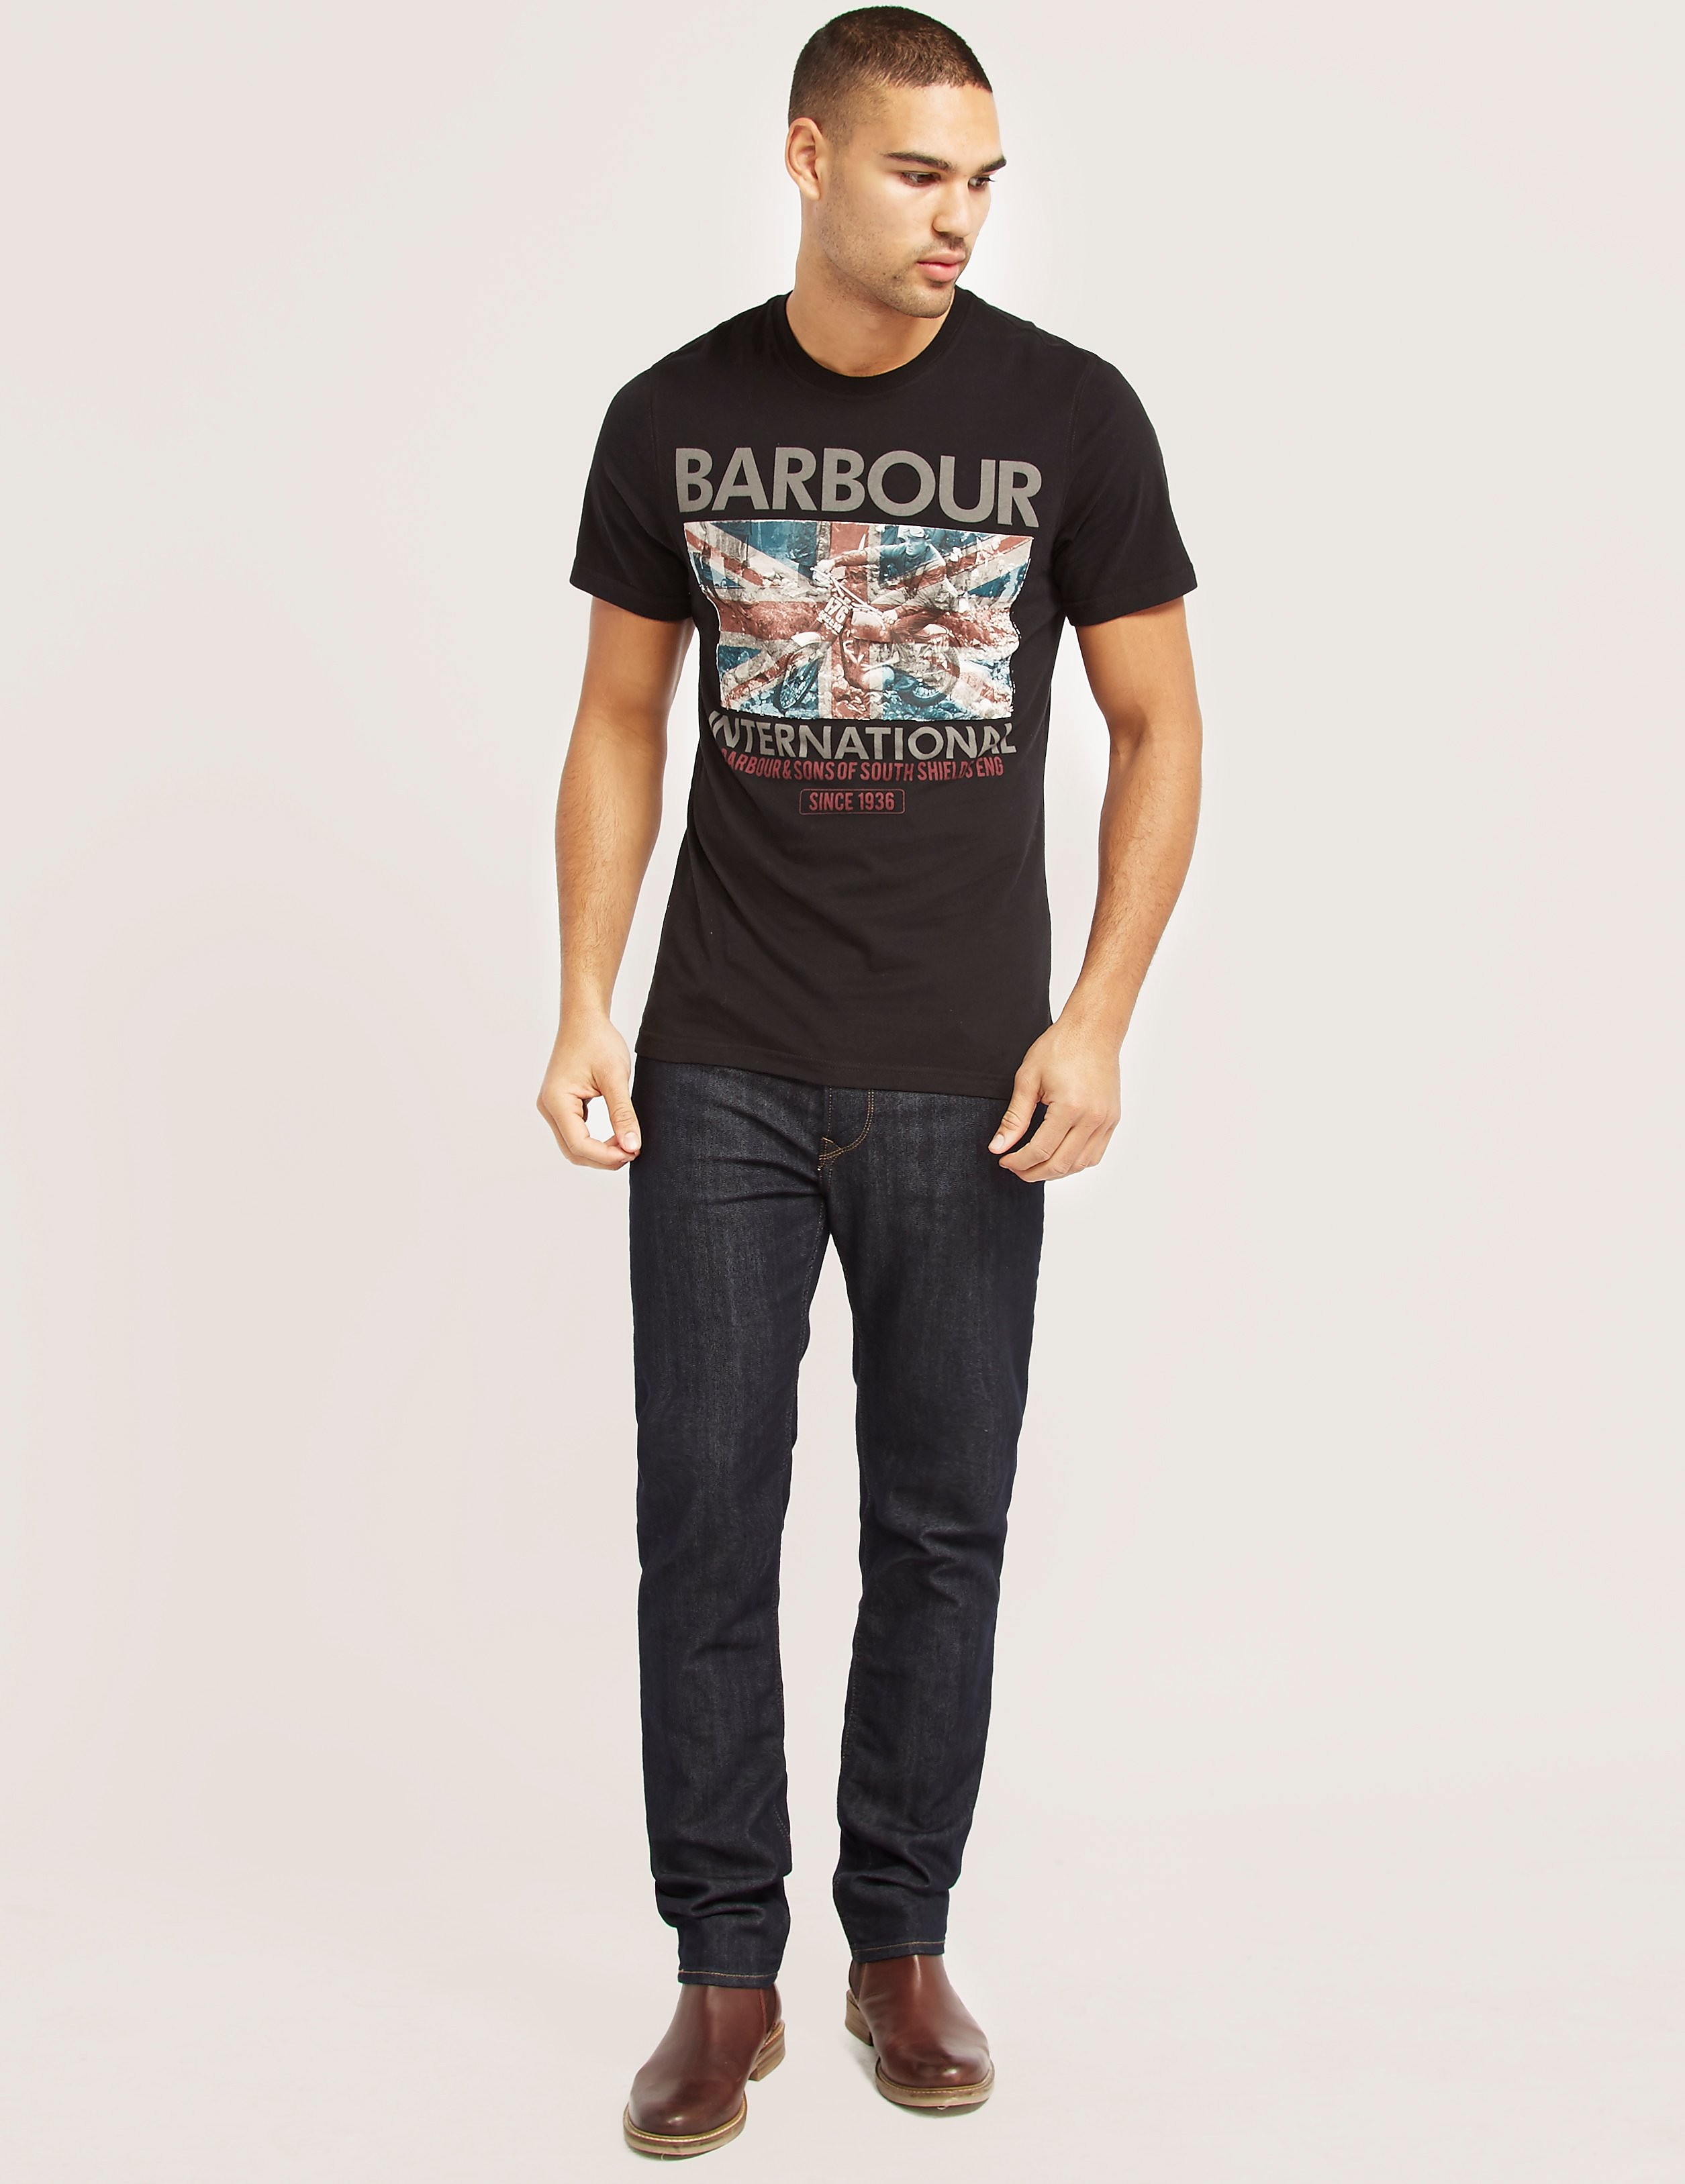 Barbour International Hydro T-Shirt